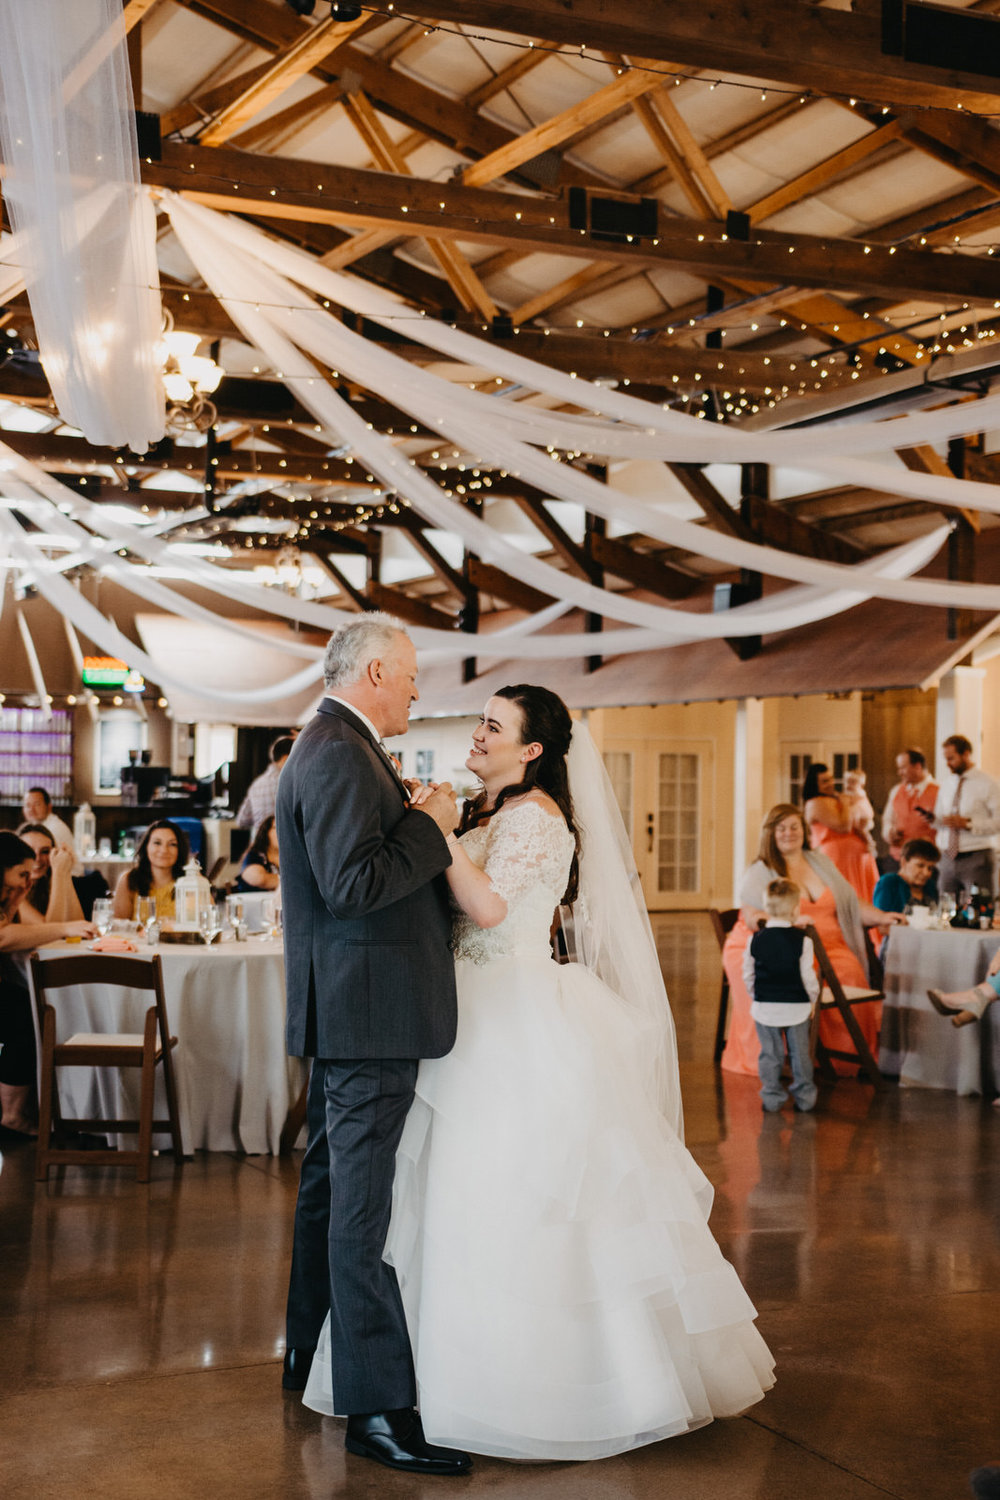 Lisa&Logan'sWeddingBlog48.jpg